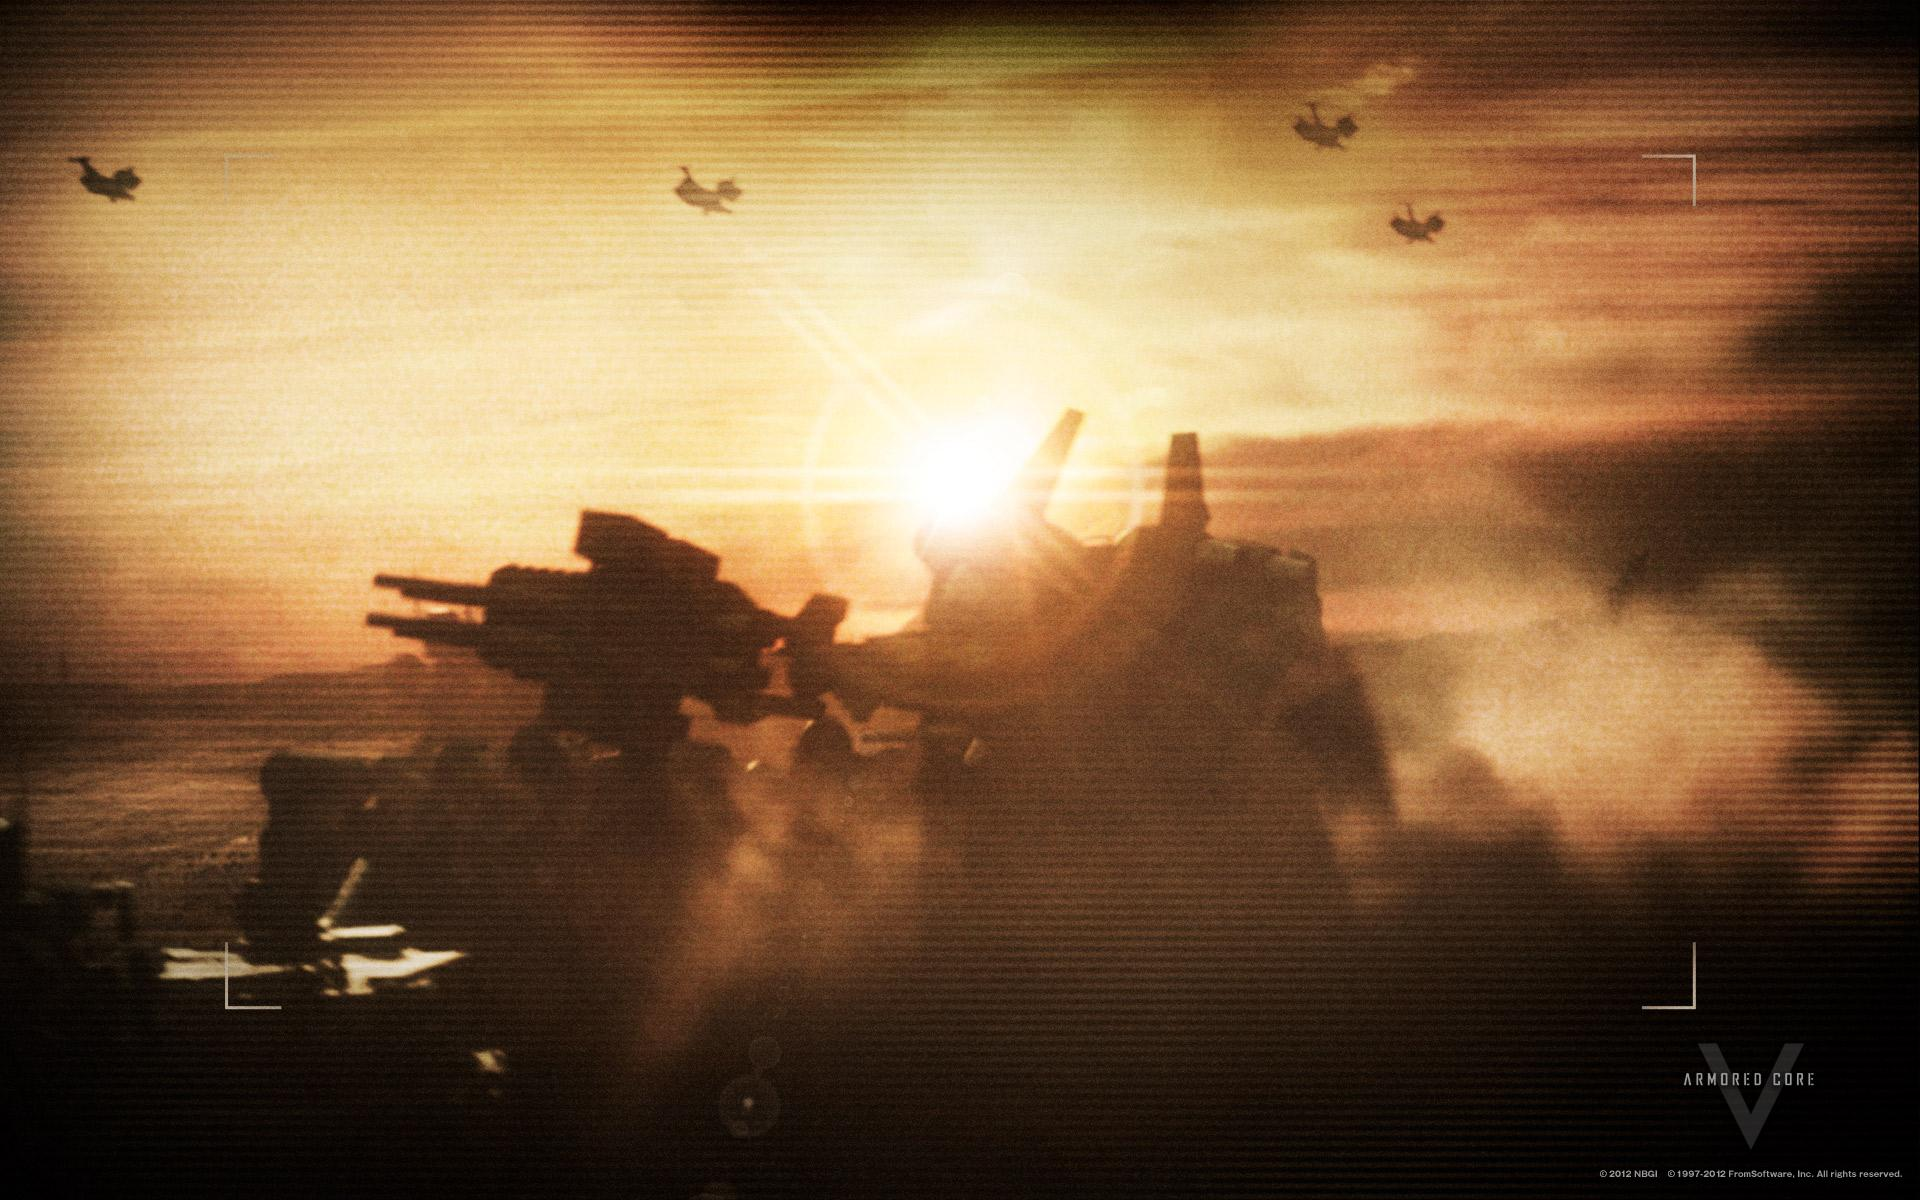 Armored core v wallpaper Group (71+)